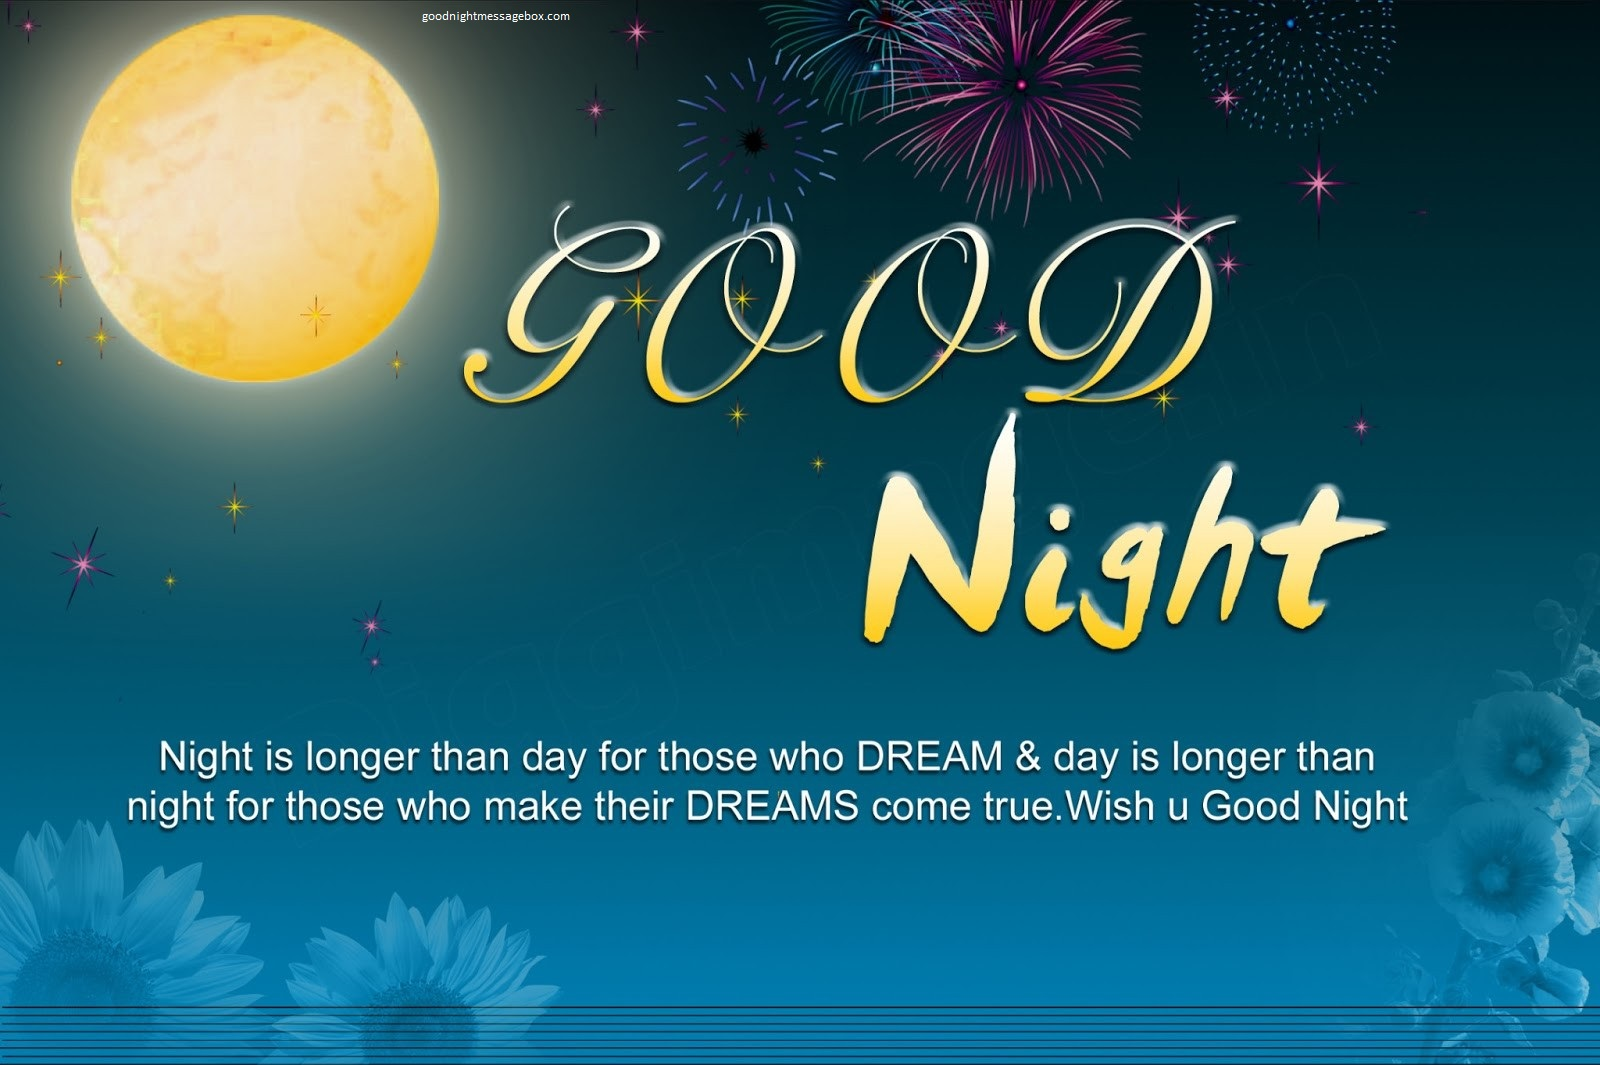 Best 36 Good Night Messages For Whatsapp And Facebook